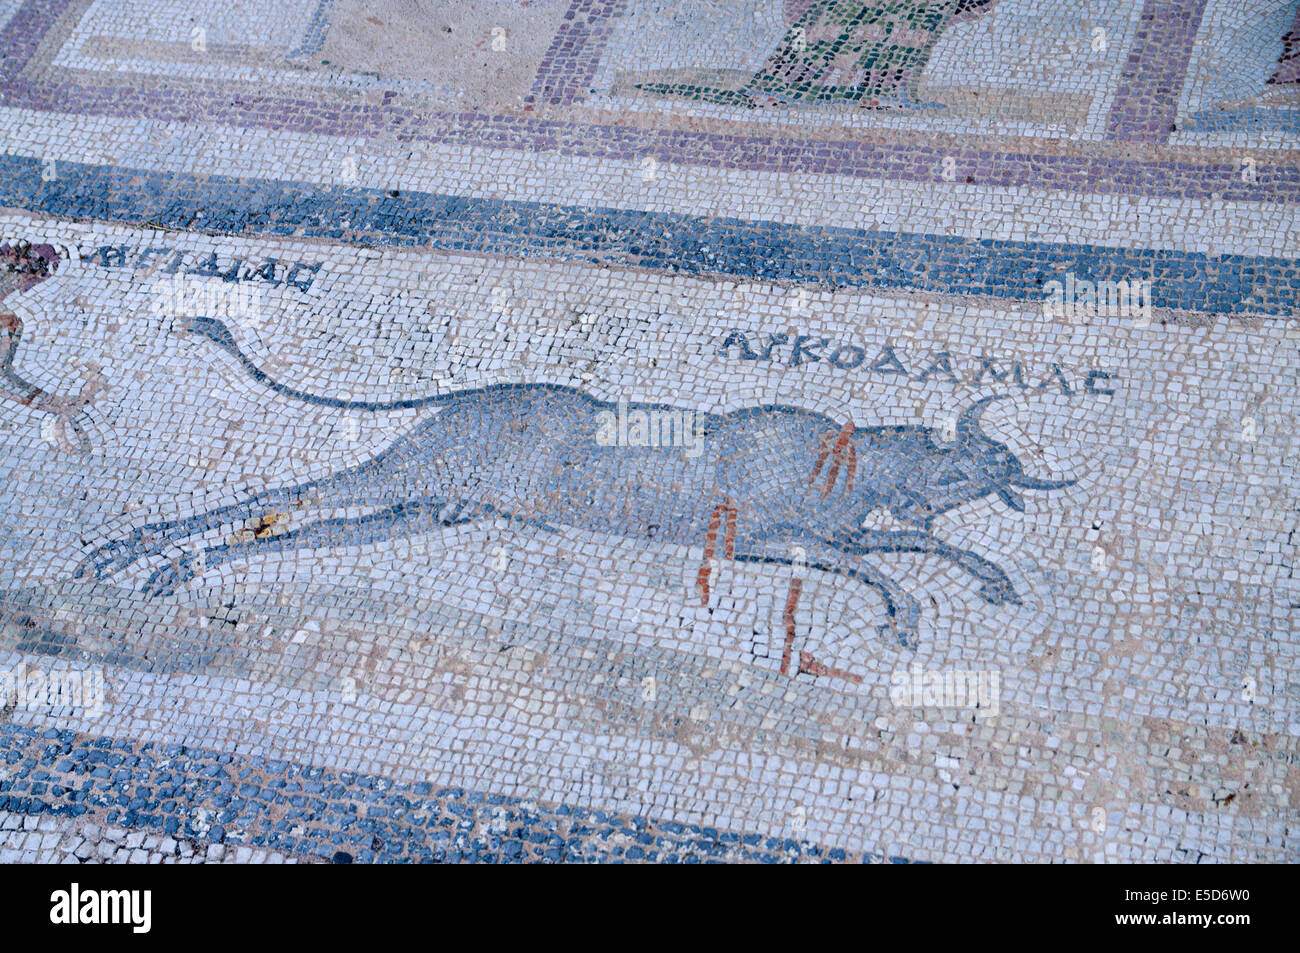 Detail of Mosaic, The Western Archaeological Zone, Kos Town, Kos Island, Dodecanese Islands, Greece. Stock Photo